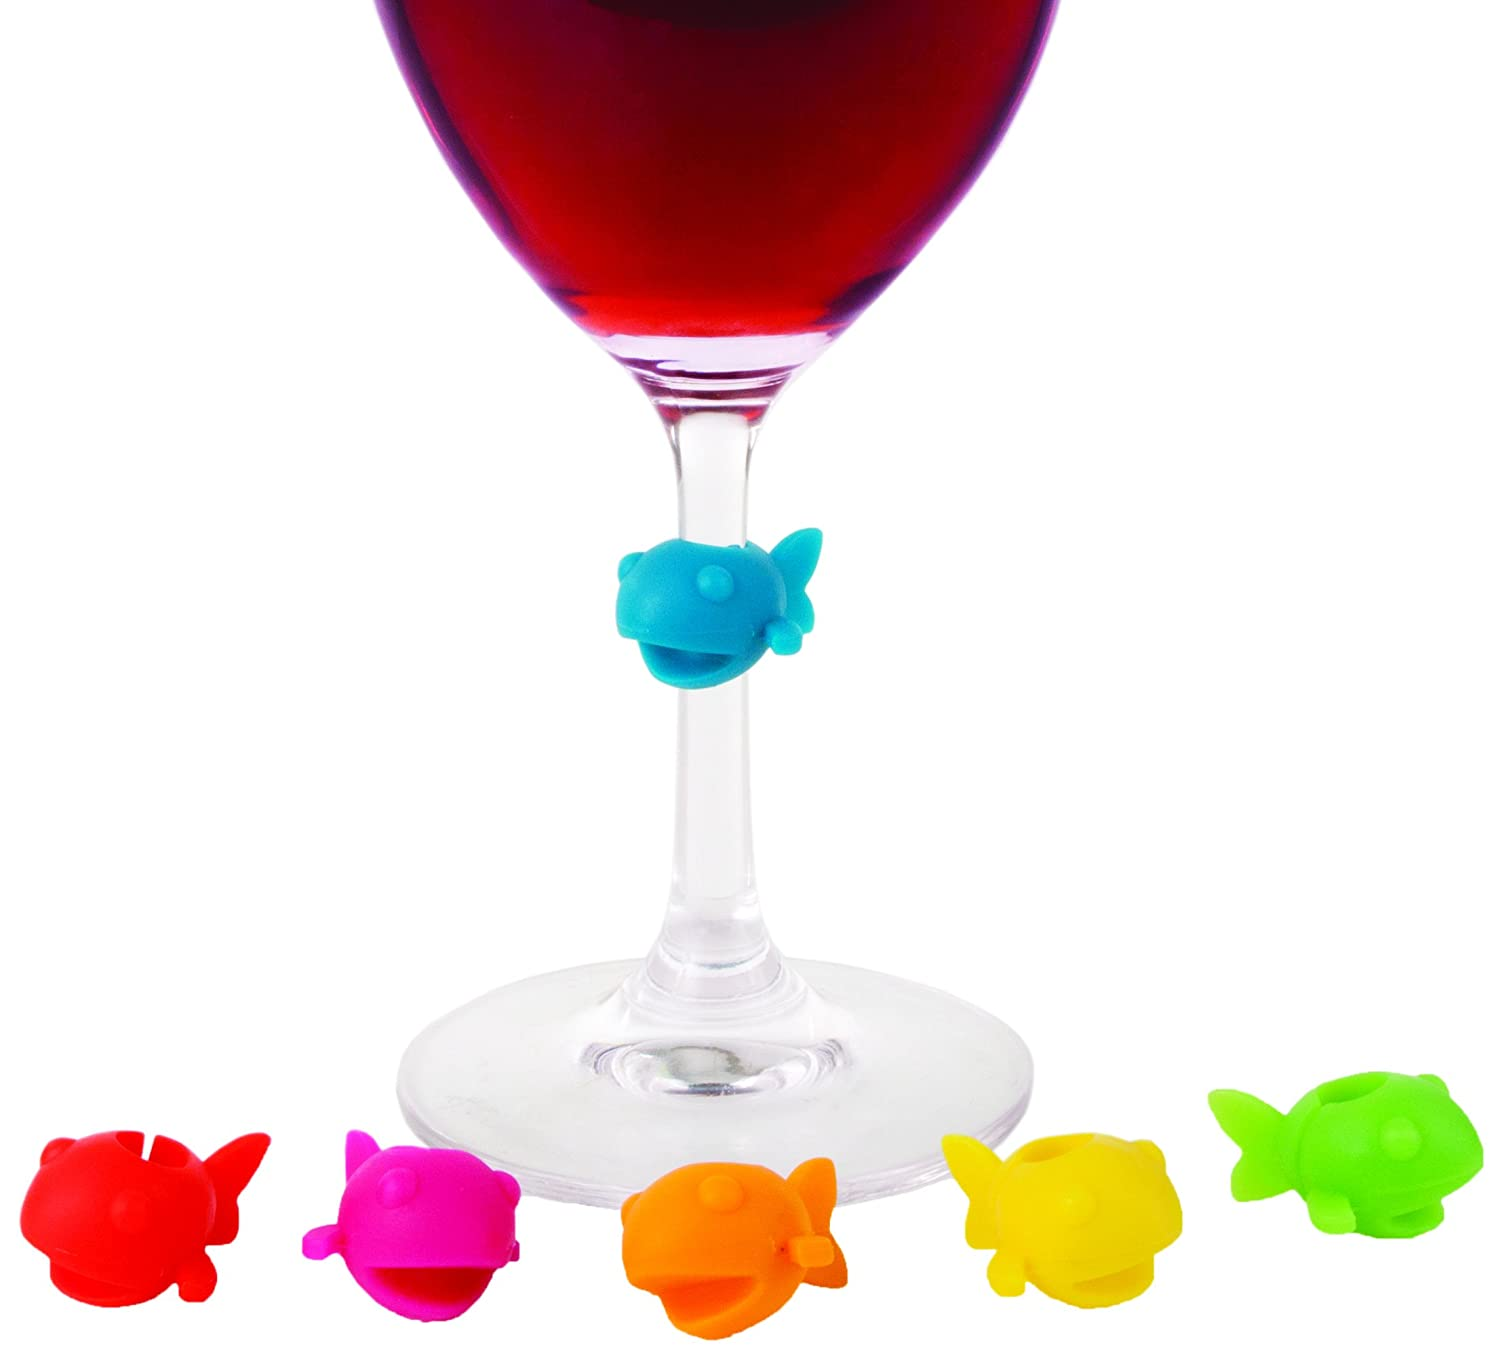 Bow Tie Set of 6 Silicone Wine Charms by True True Fabrication 3388